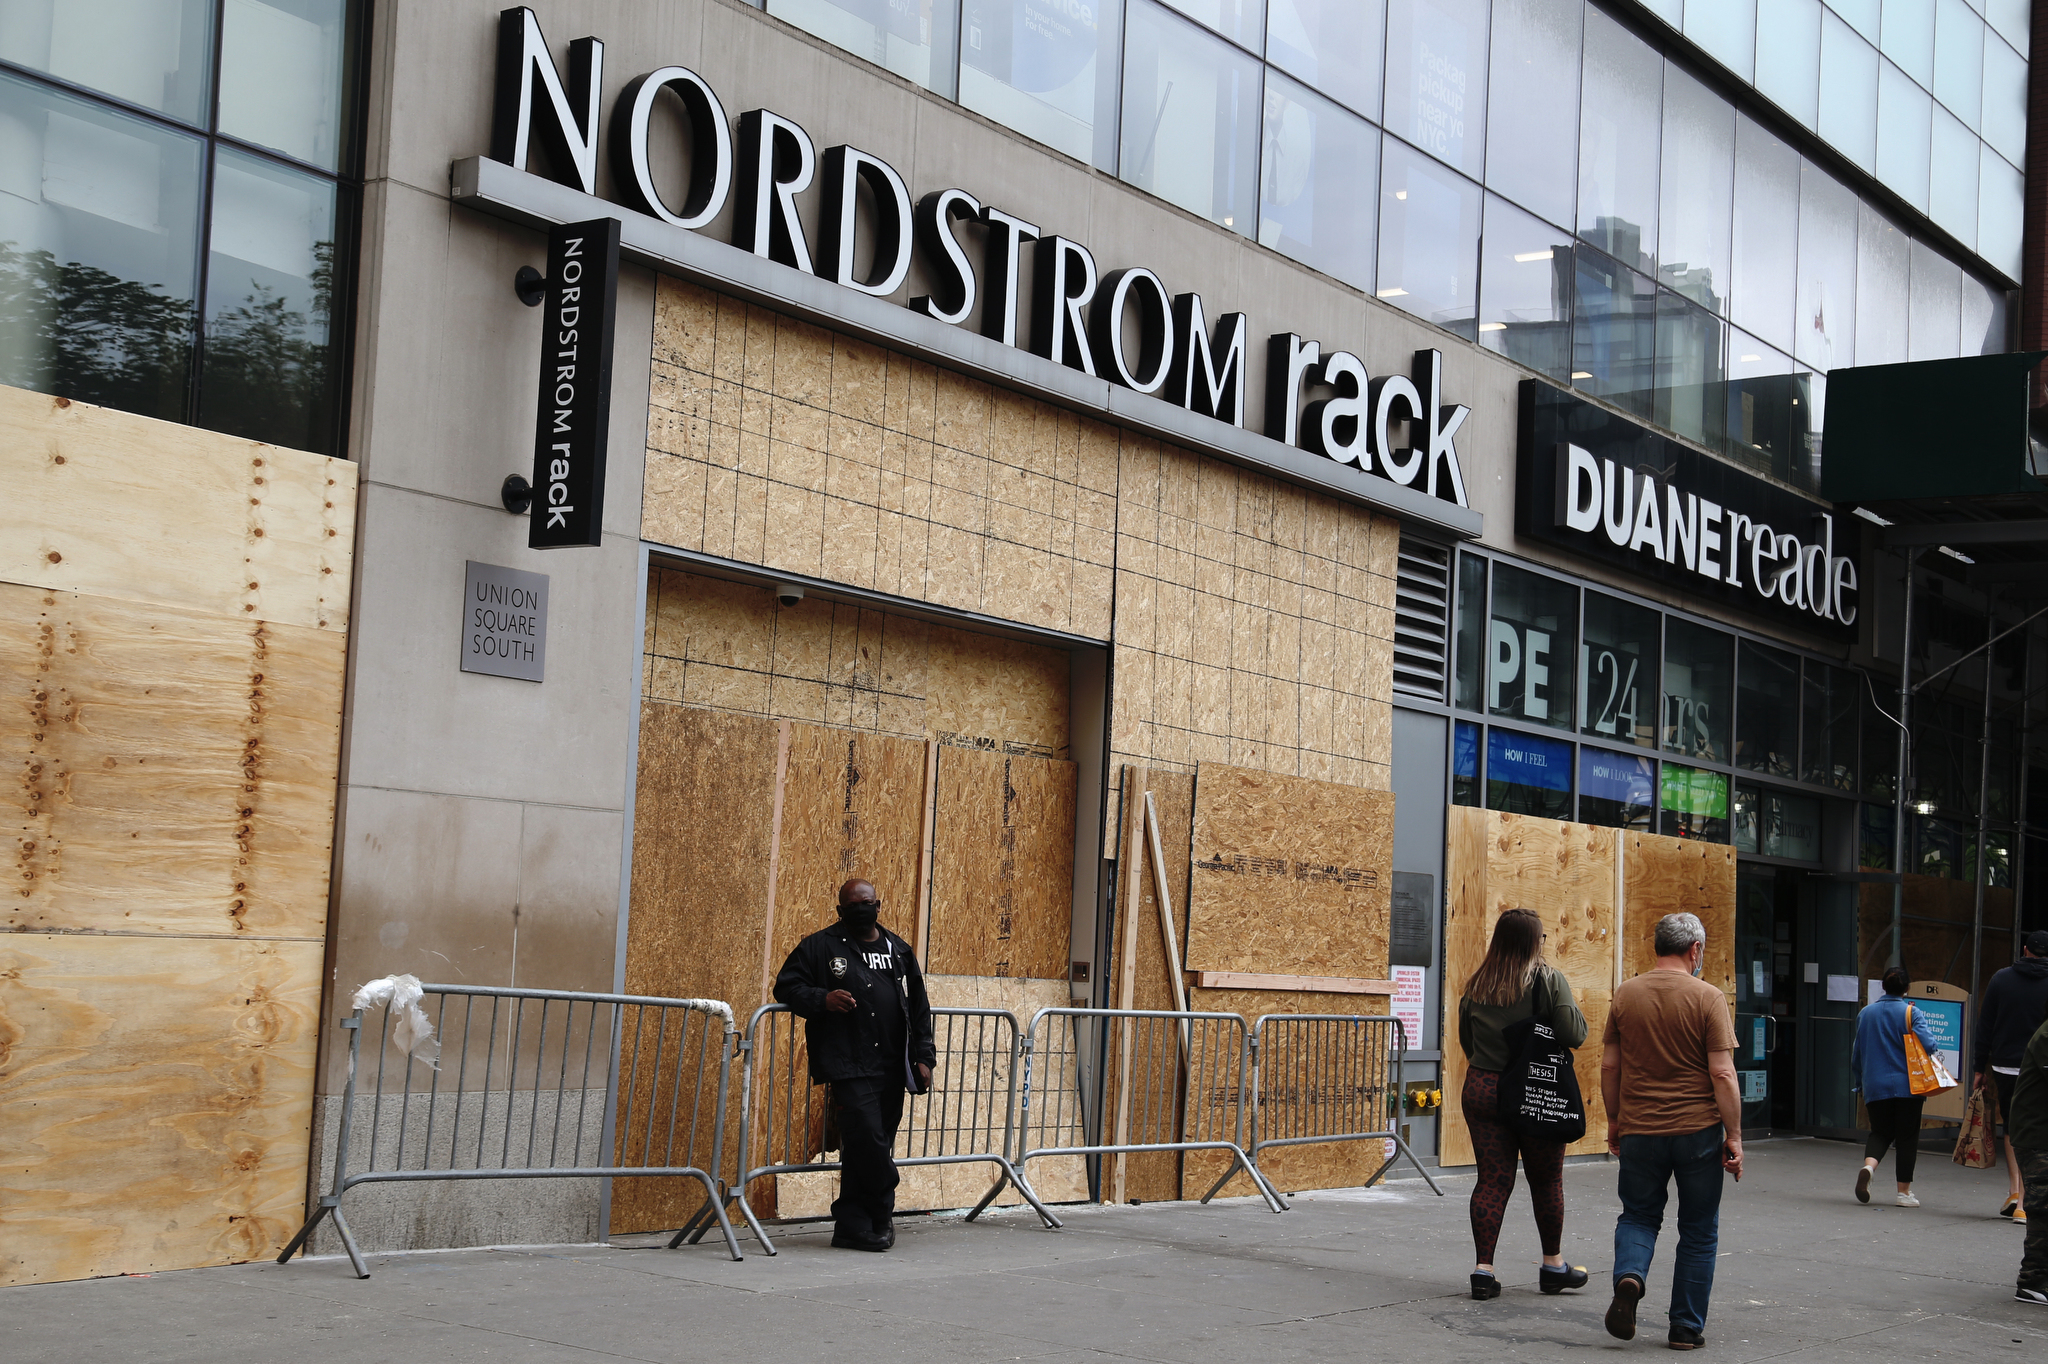 Nordstrom Rack boarded up in New York's Union Square.